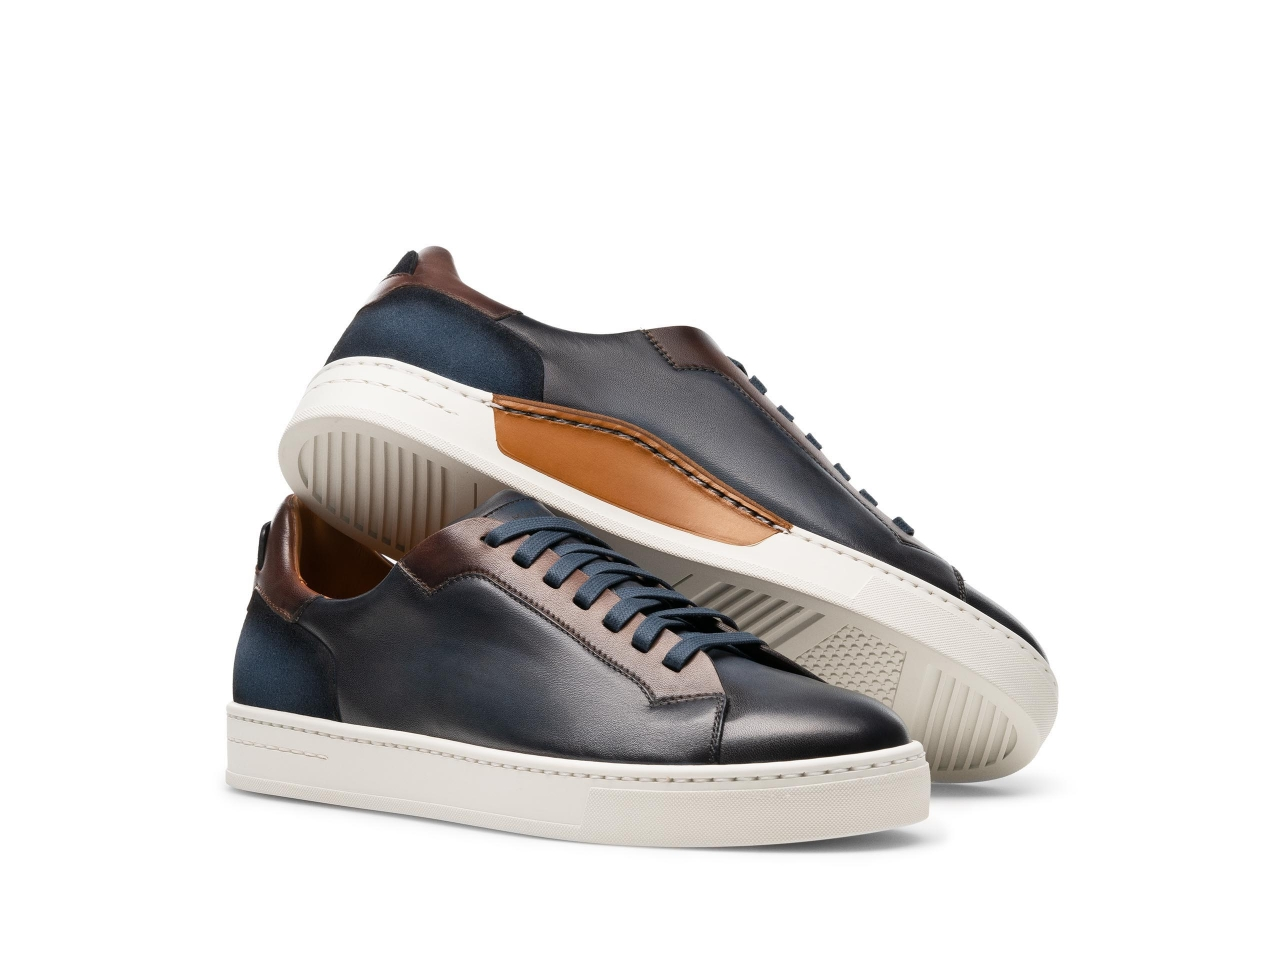 Pair of the Amadeo Navy / Brown